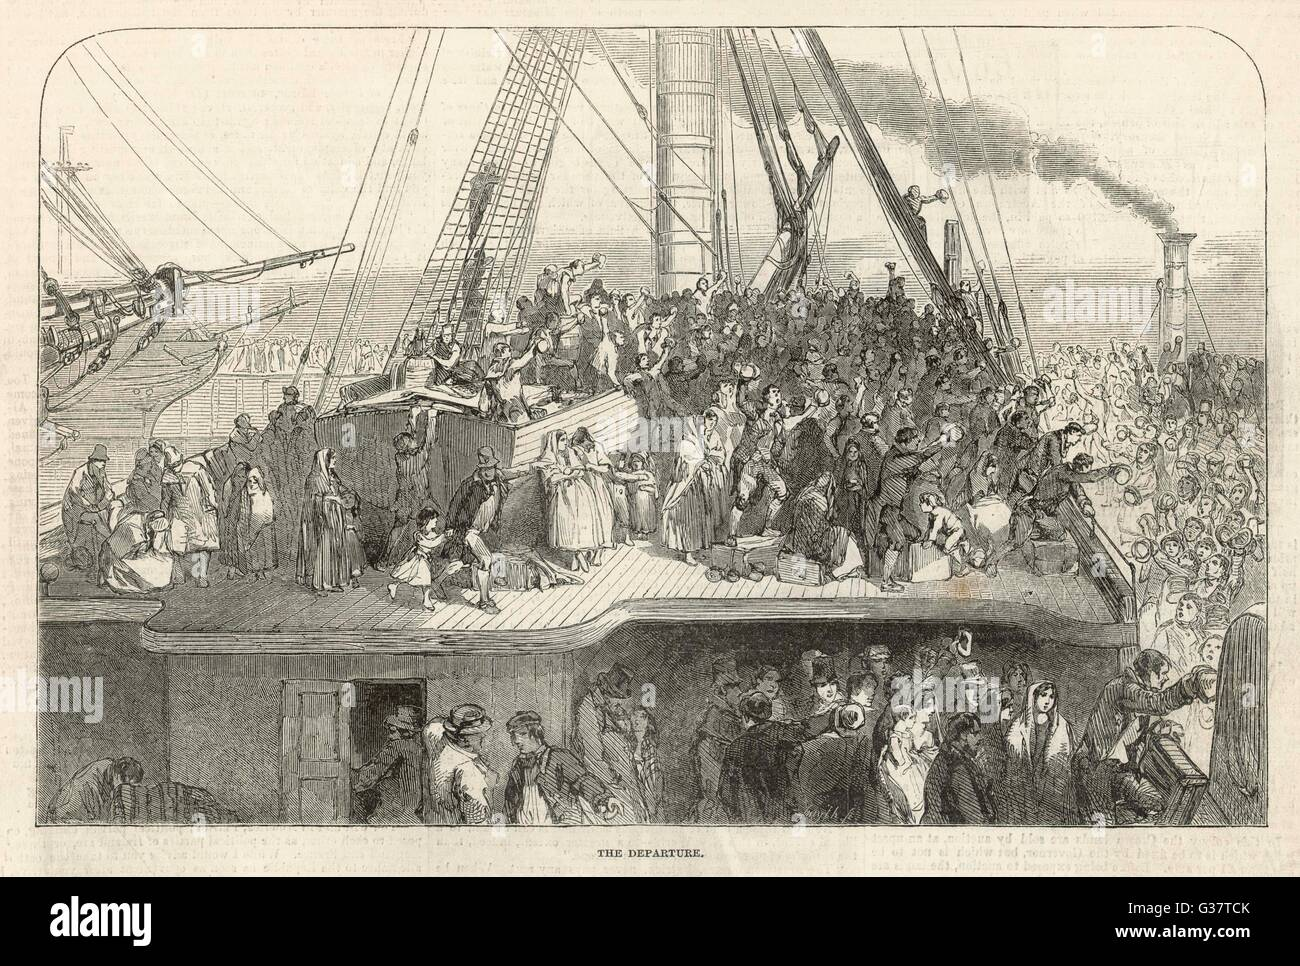 Departure of an emigrant ship from Liverpool for America        Date: 1850 - Stock Image